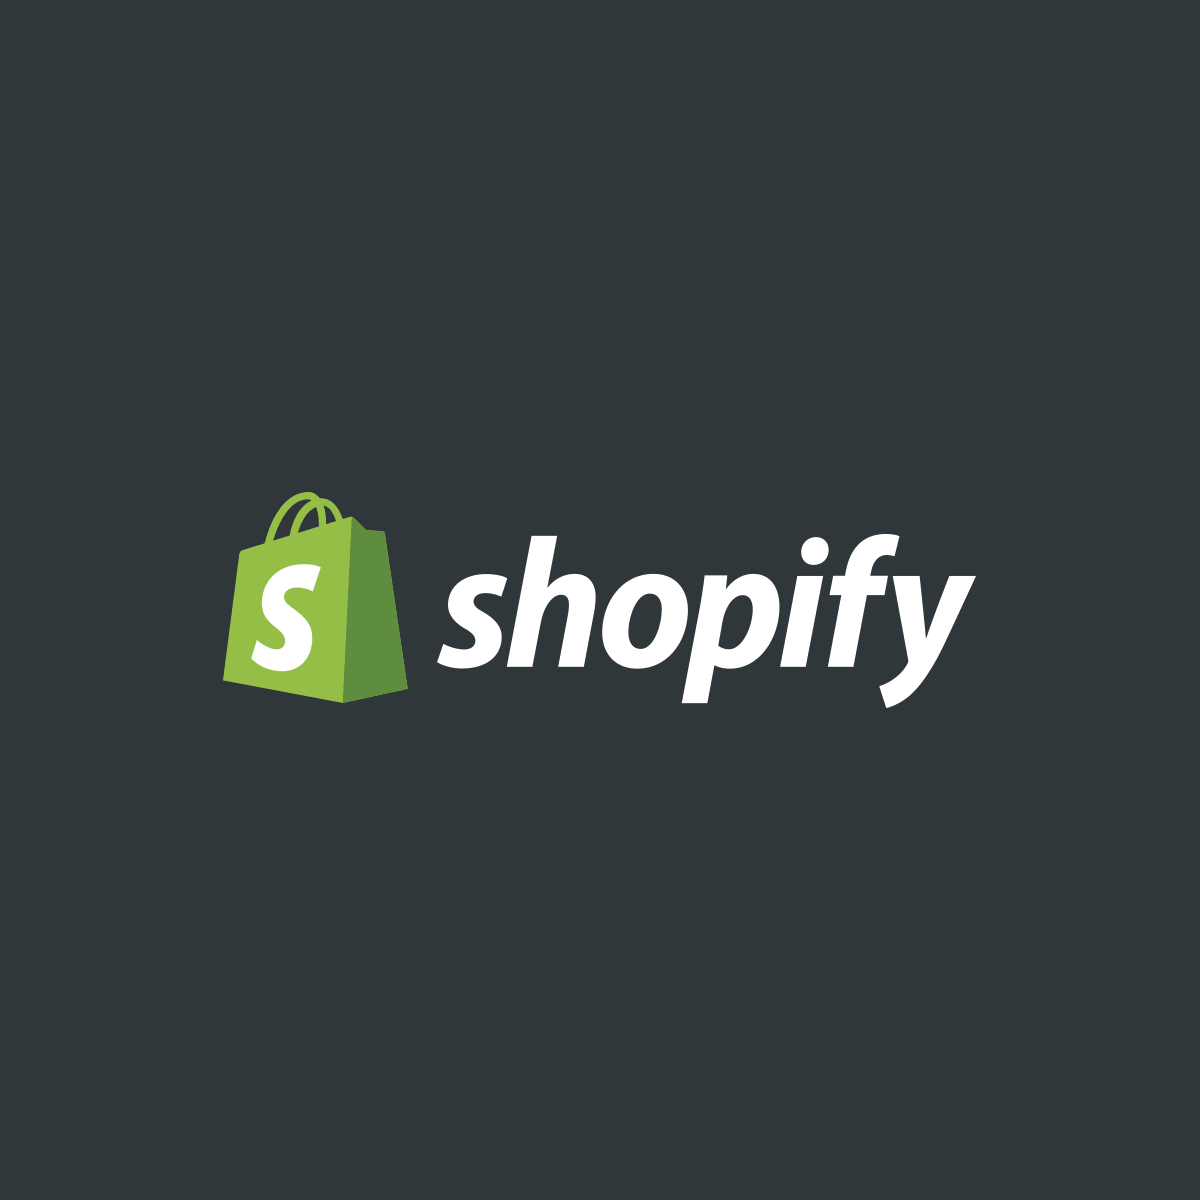 API tutorials - Developer resources - Shopify Help Center